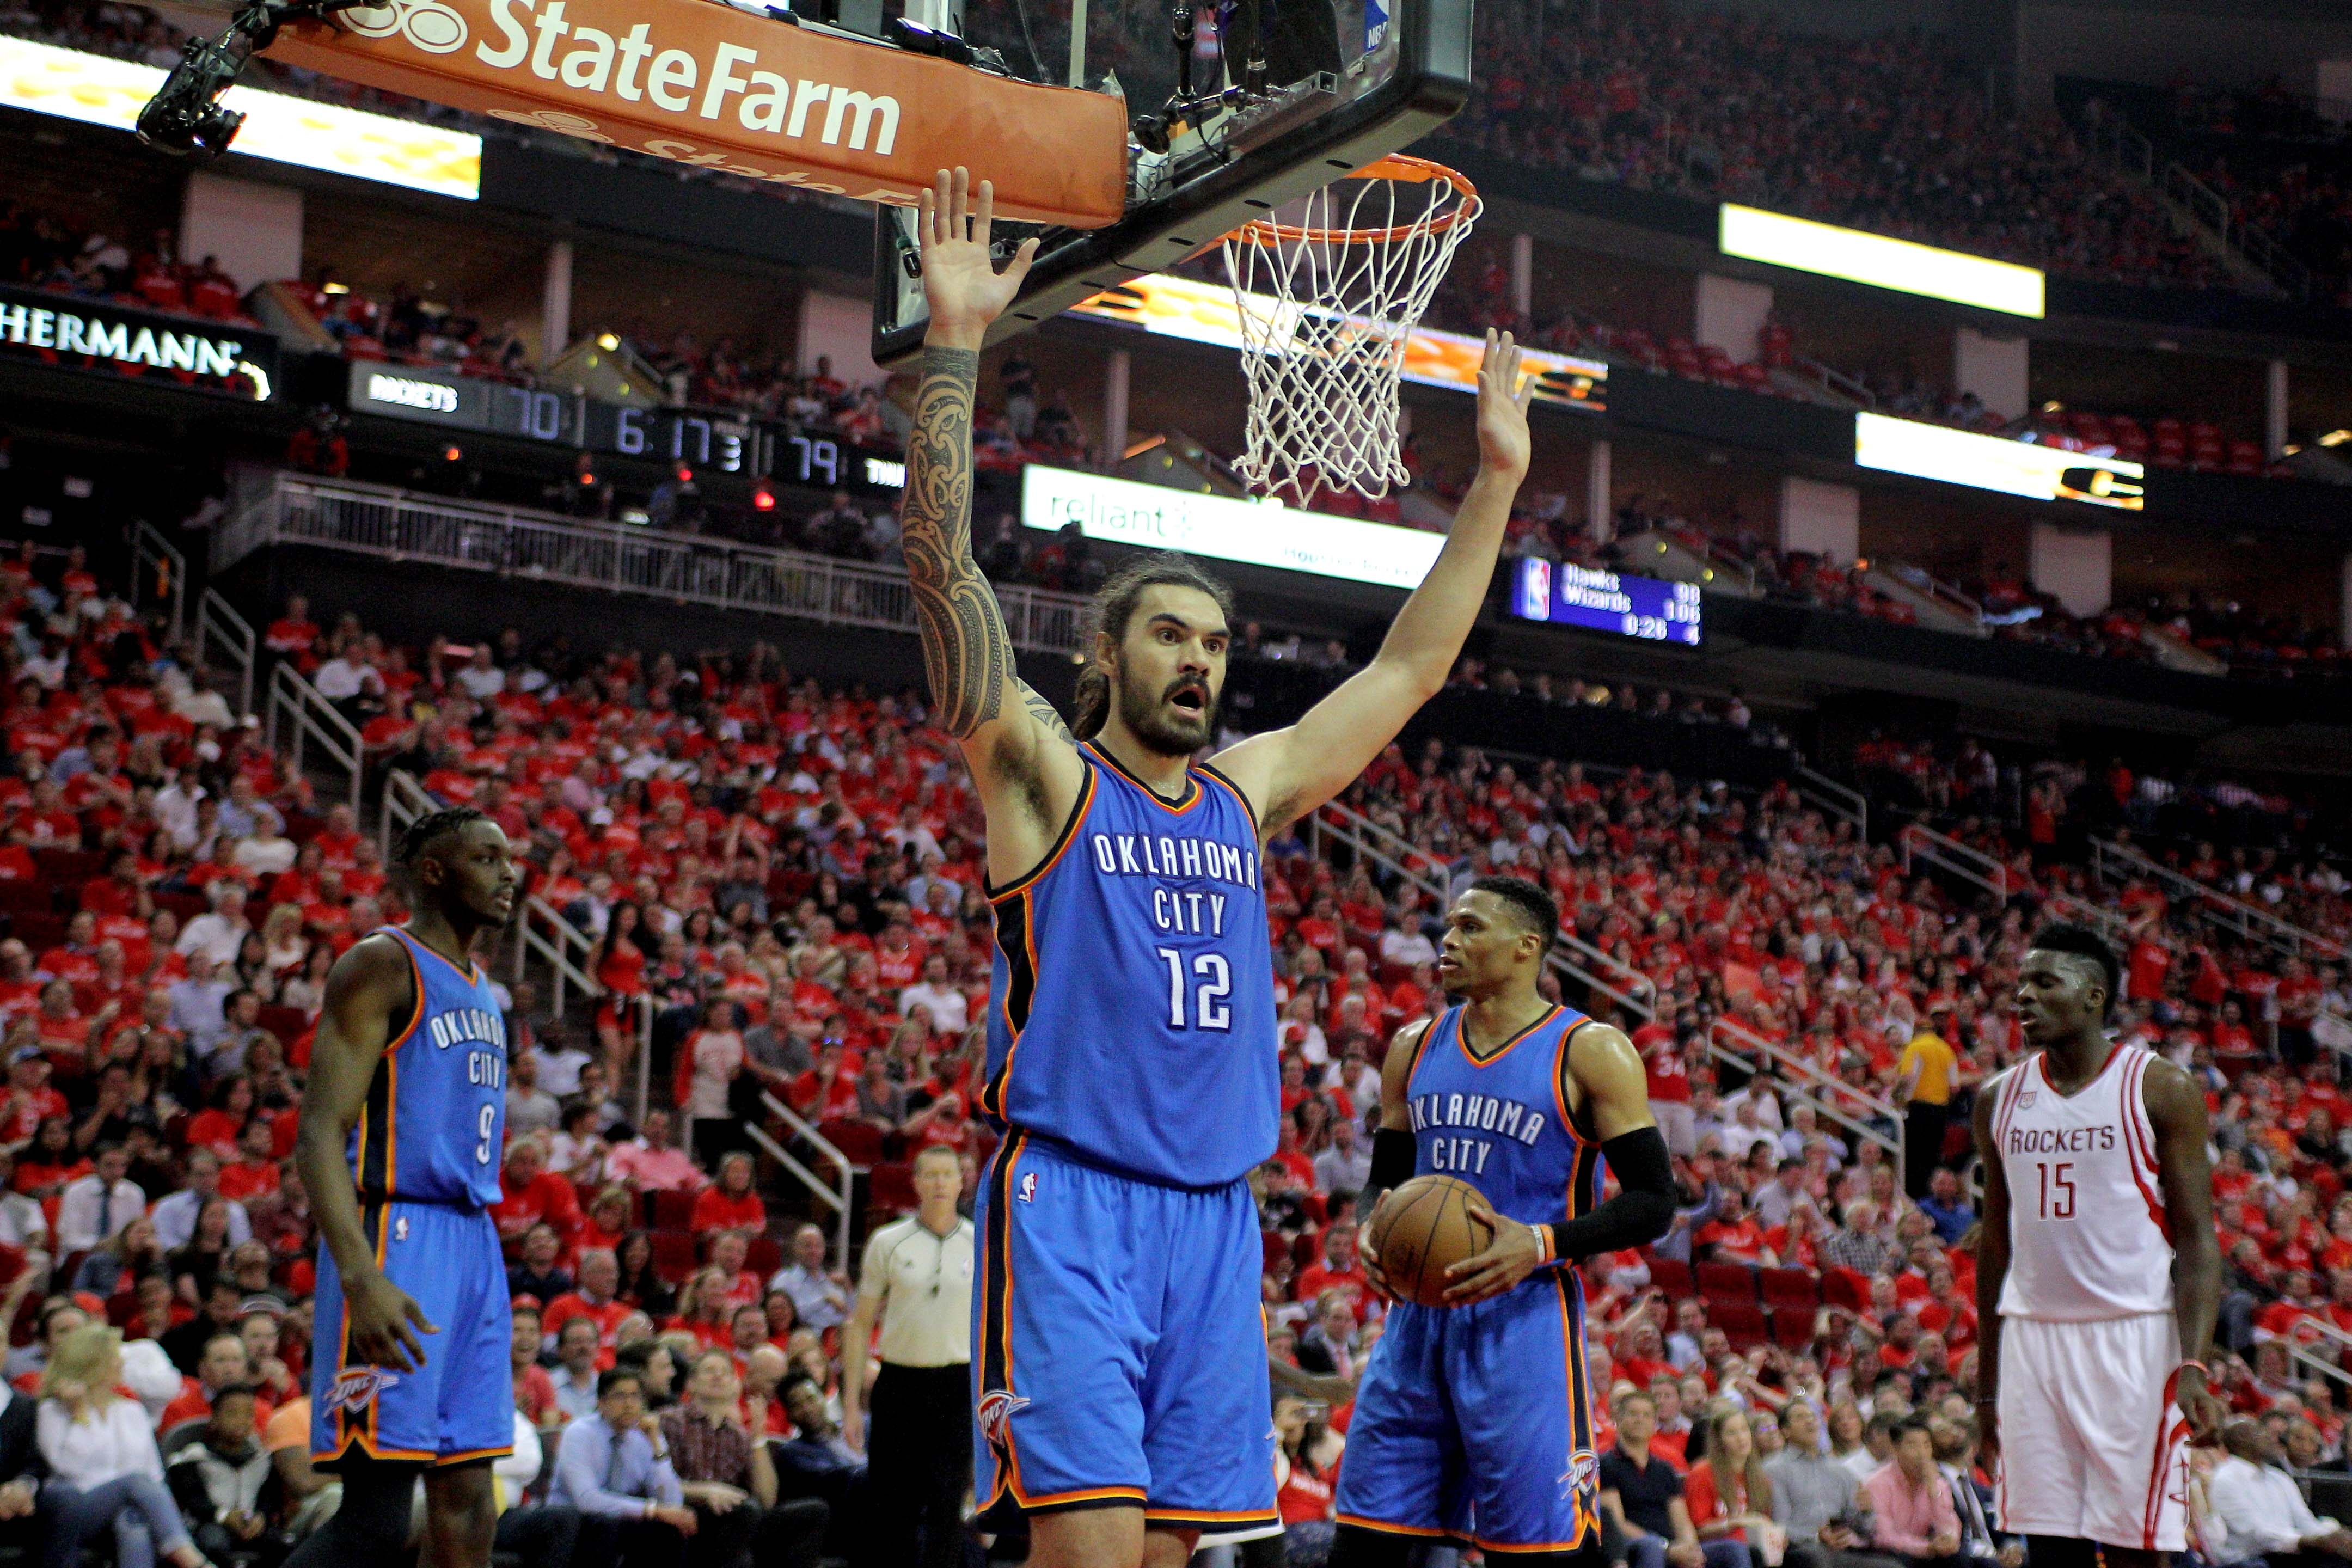 10029299-nba-playoffs-oklahoma-city-thunder-at-houston-rockets